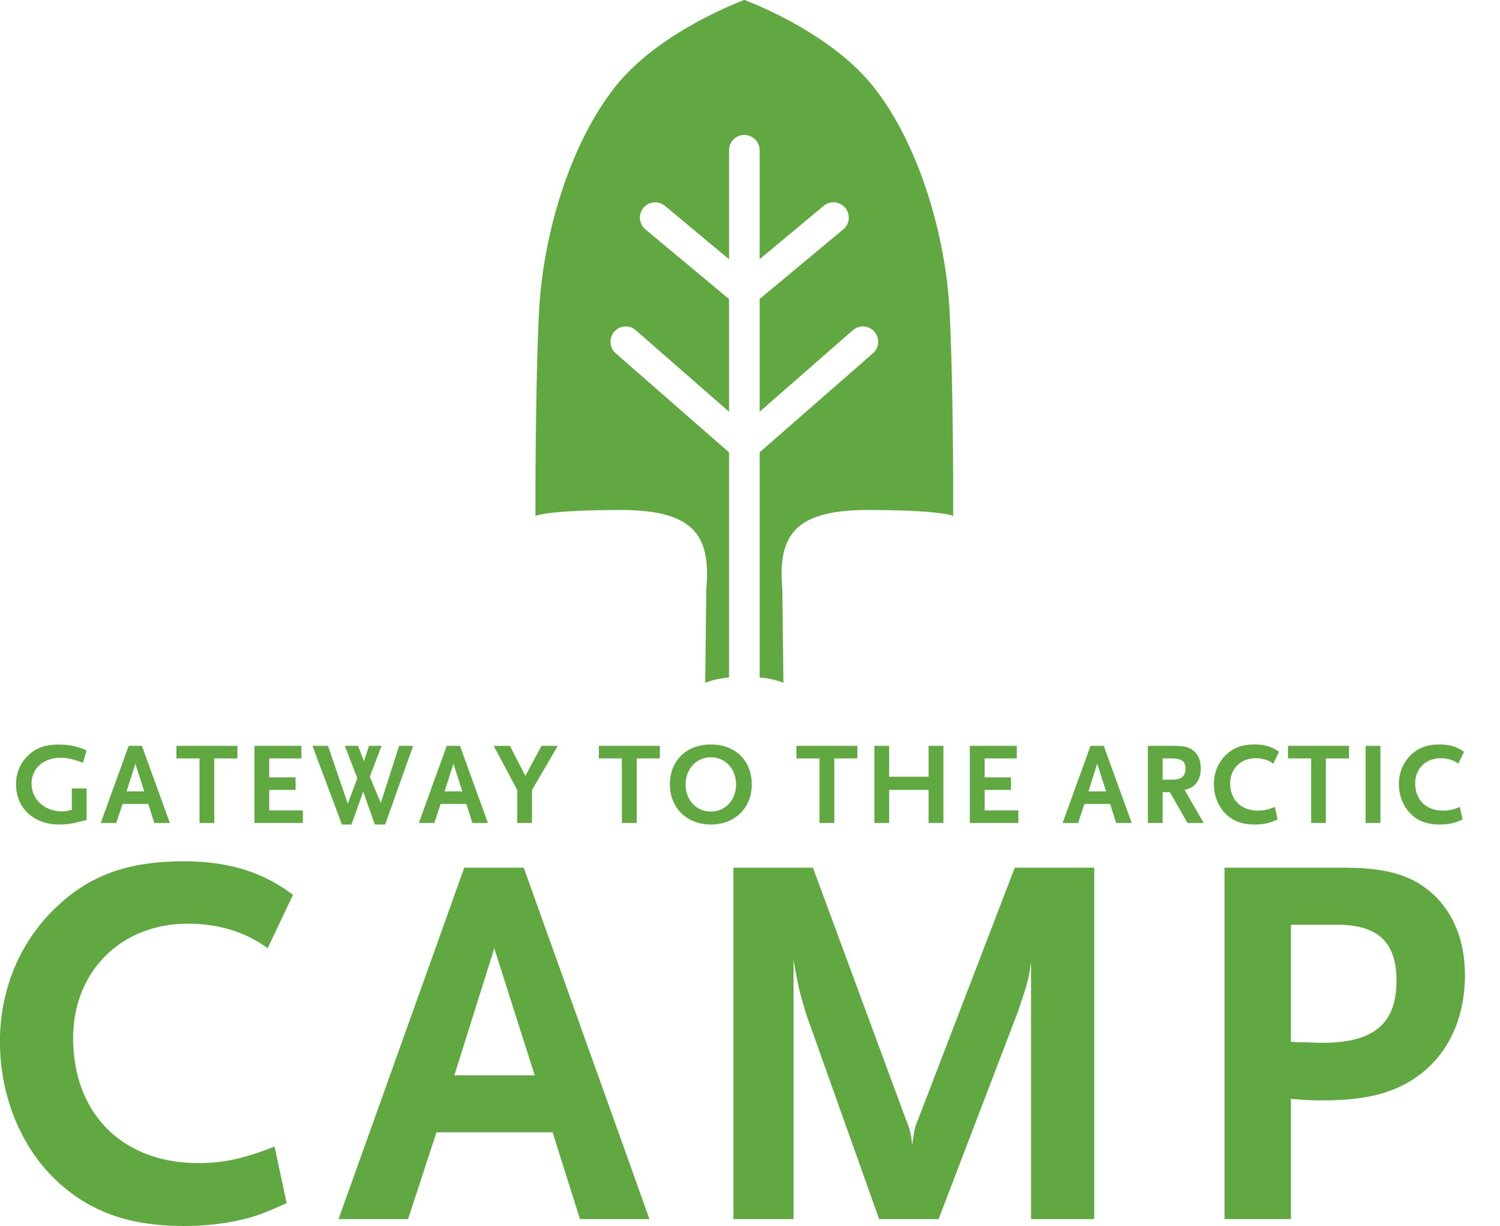 Gateway to the Arctic Camp